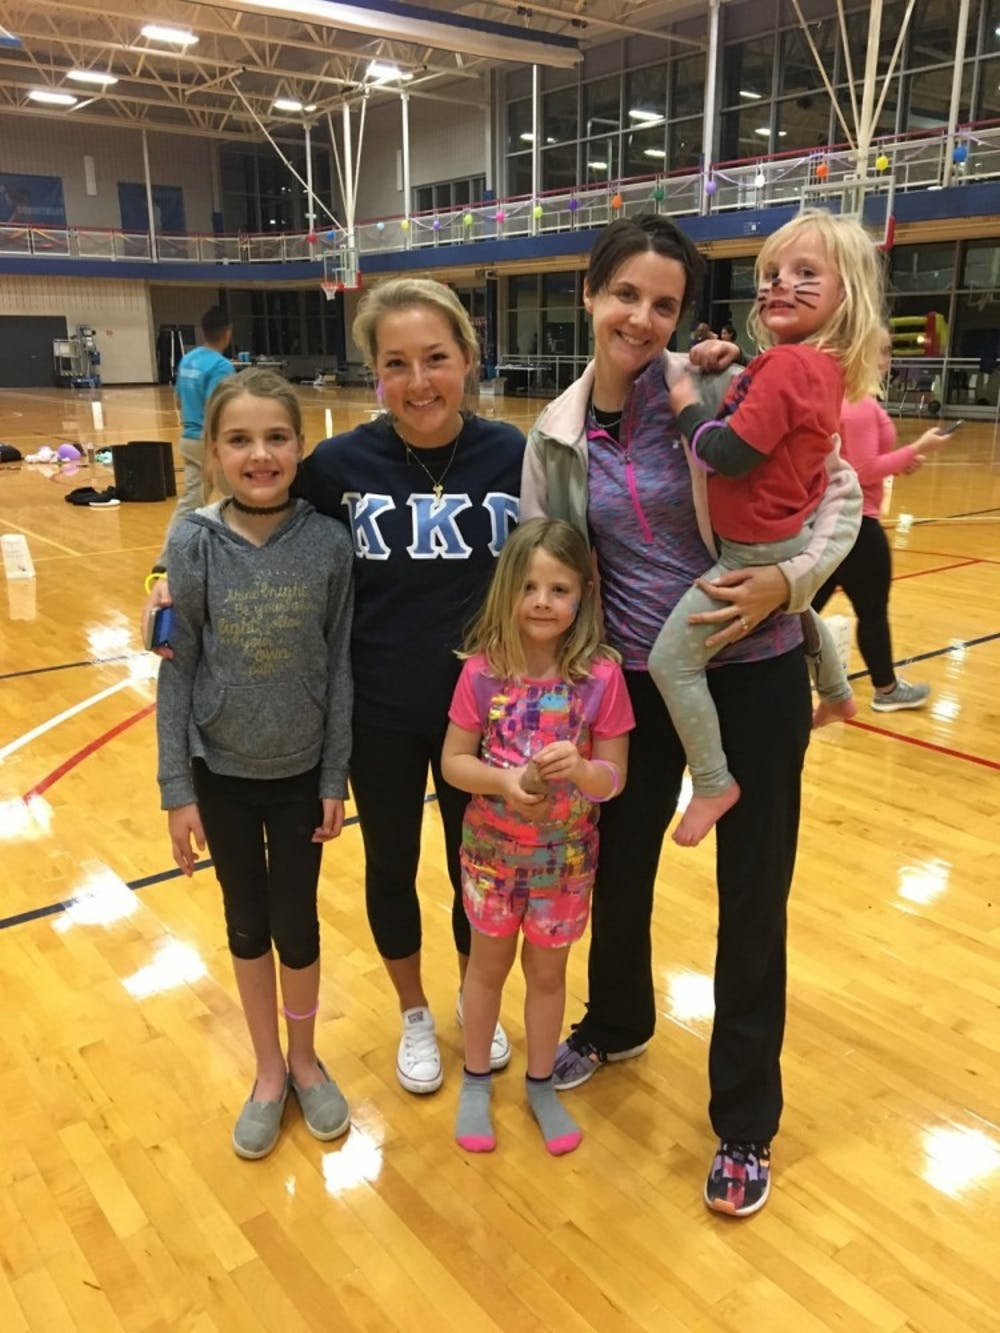 <p>Ellie Masson, WC '18, with her cousin Sylvia Donovan and Donovan's three children at the Relay for Life event.</p>